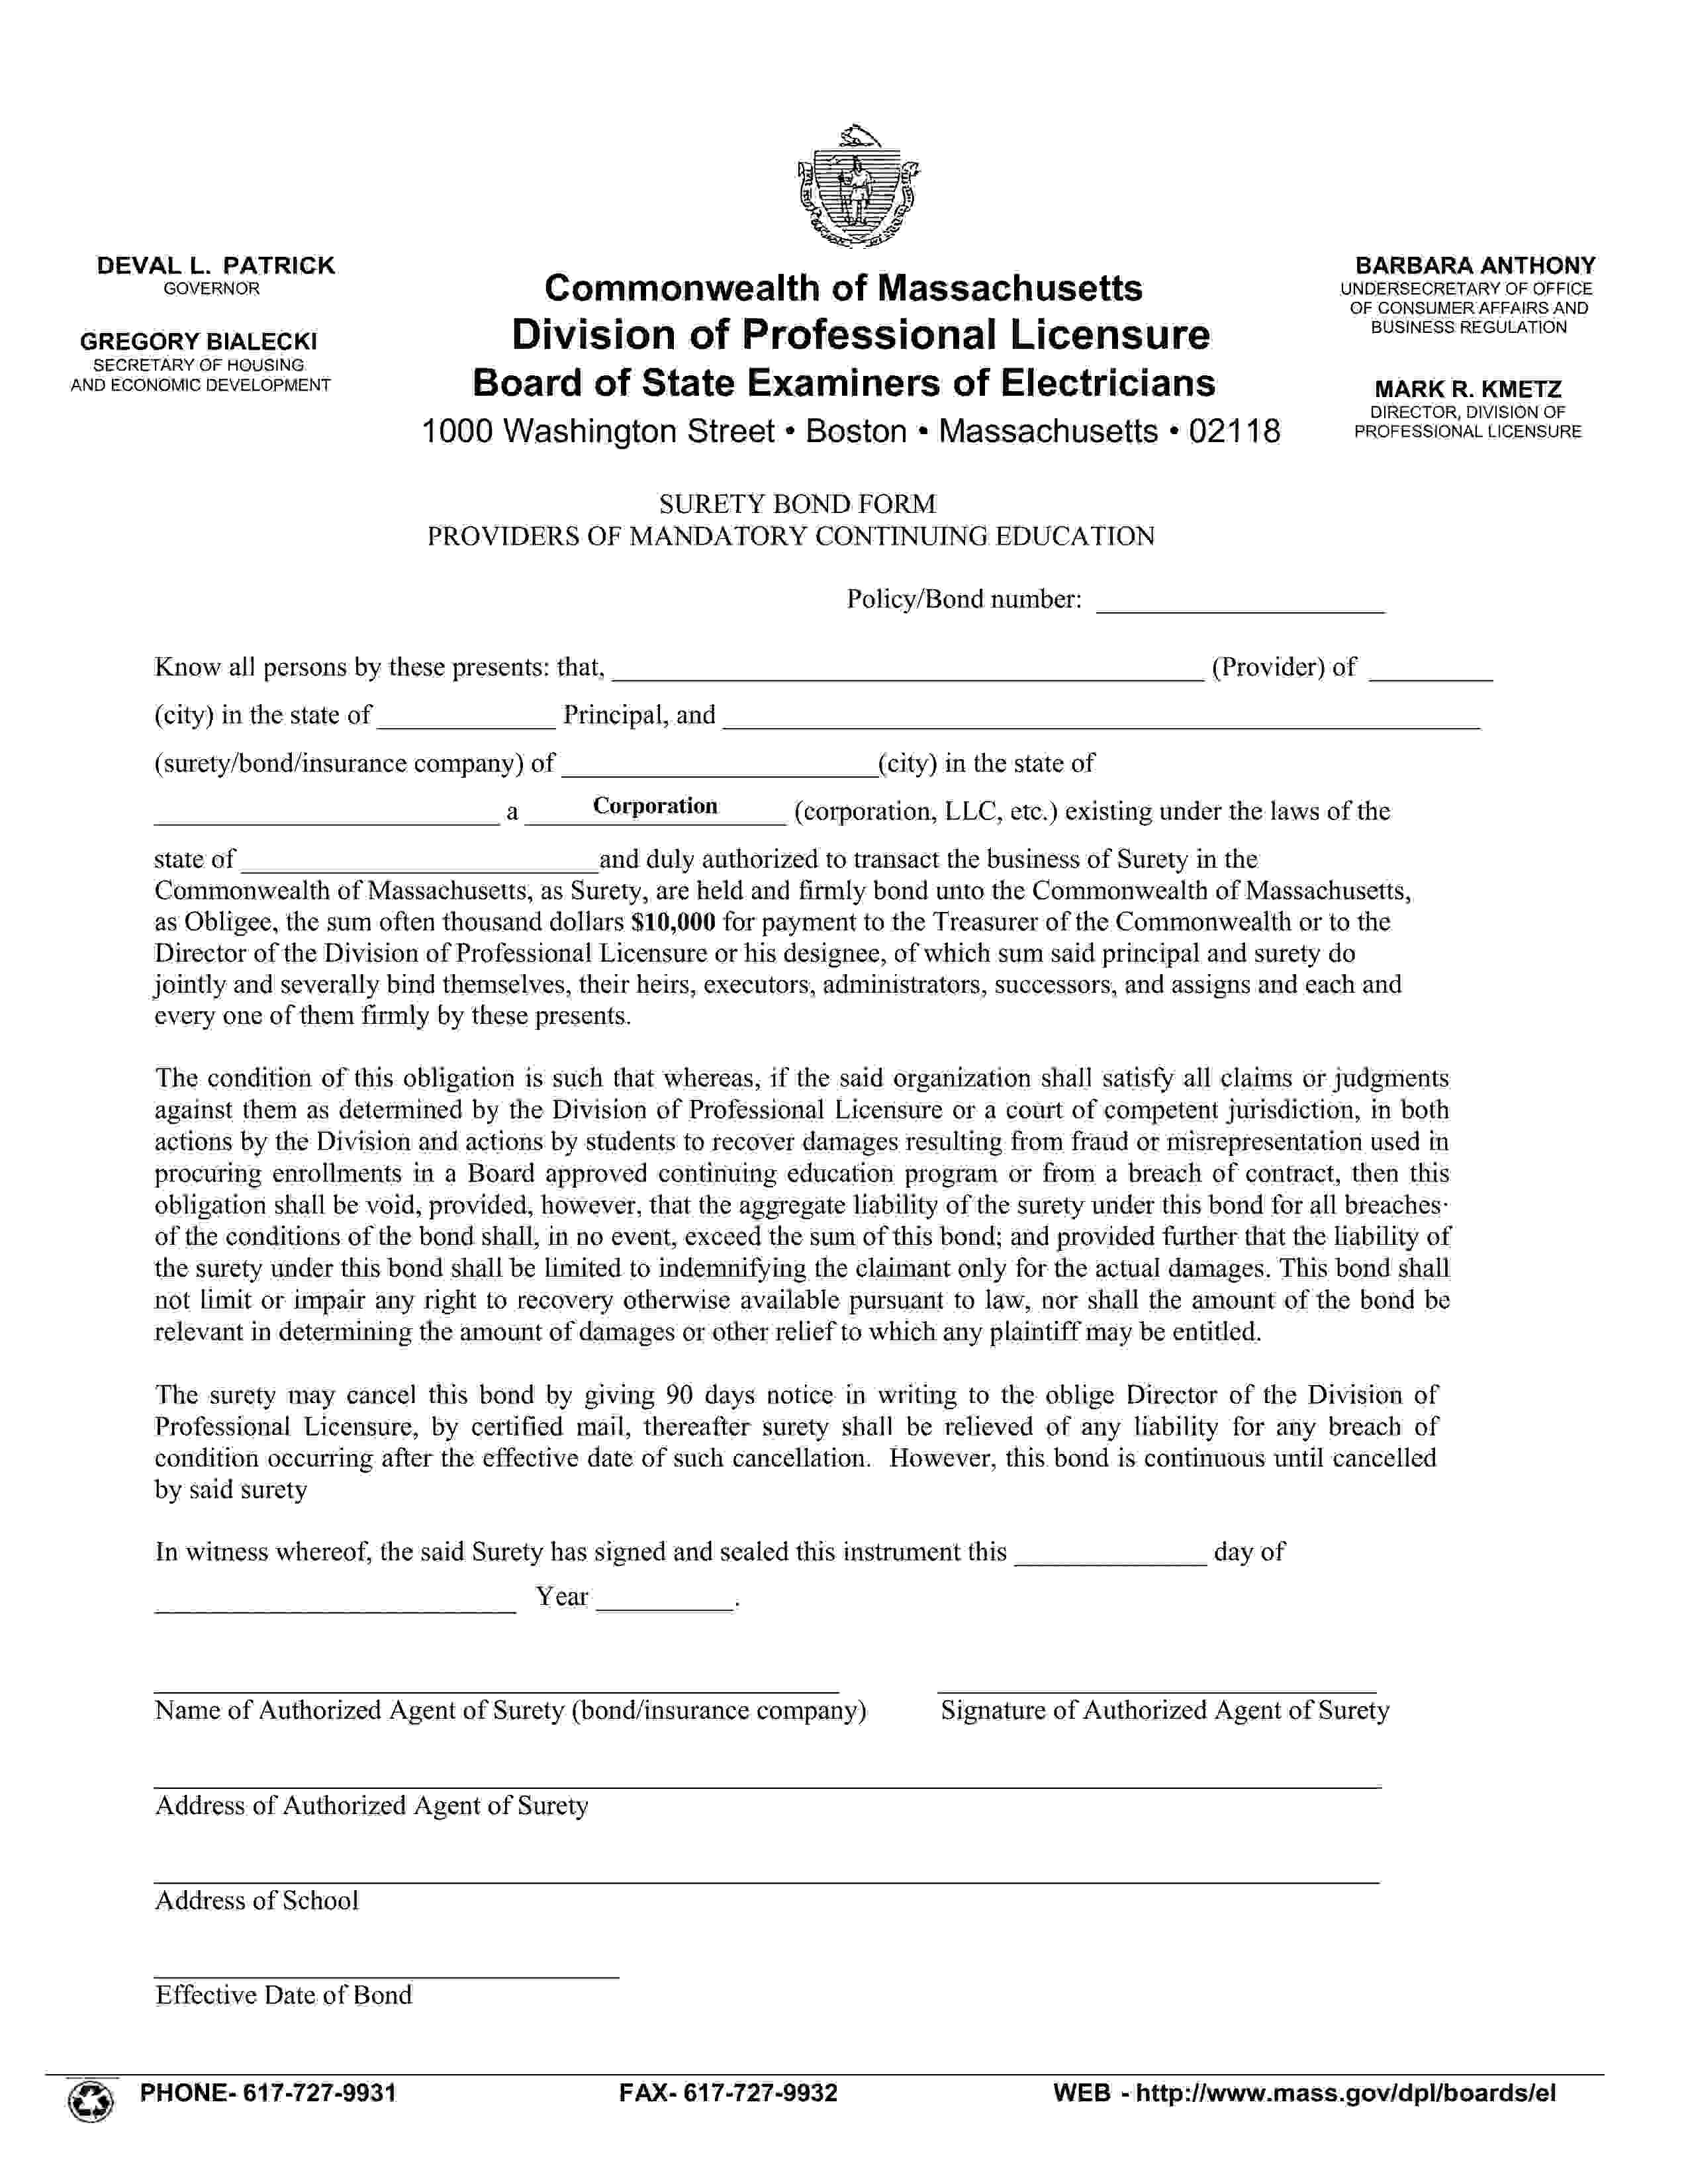 Massachusetts Division of Professional Licensure Private Continuing Education Provider Electricians Bond sample image